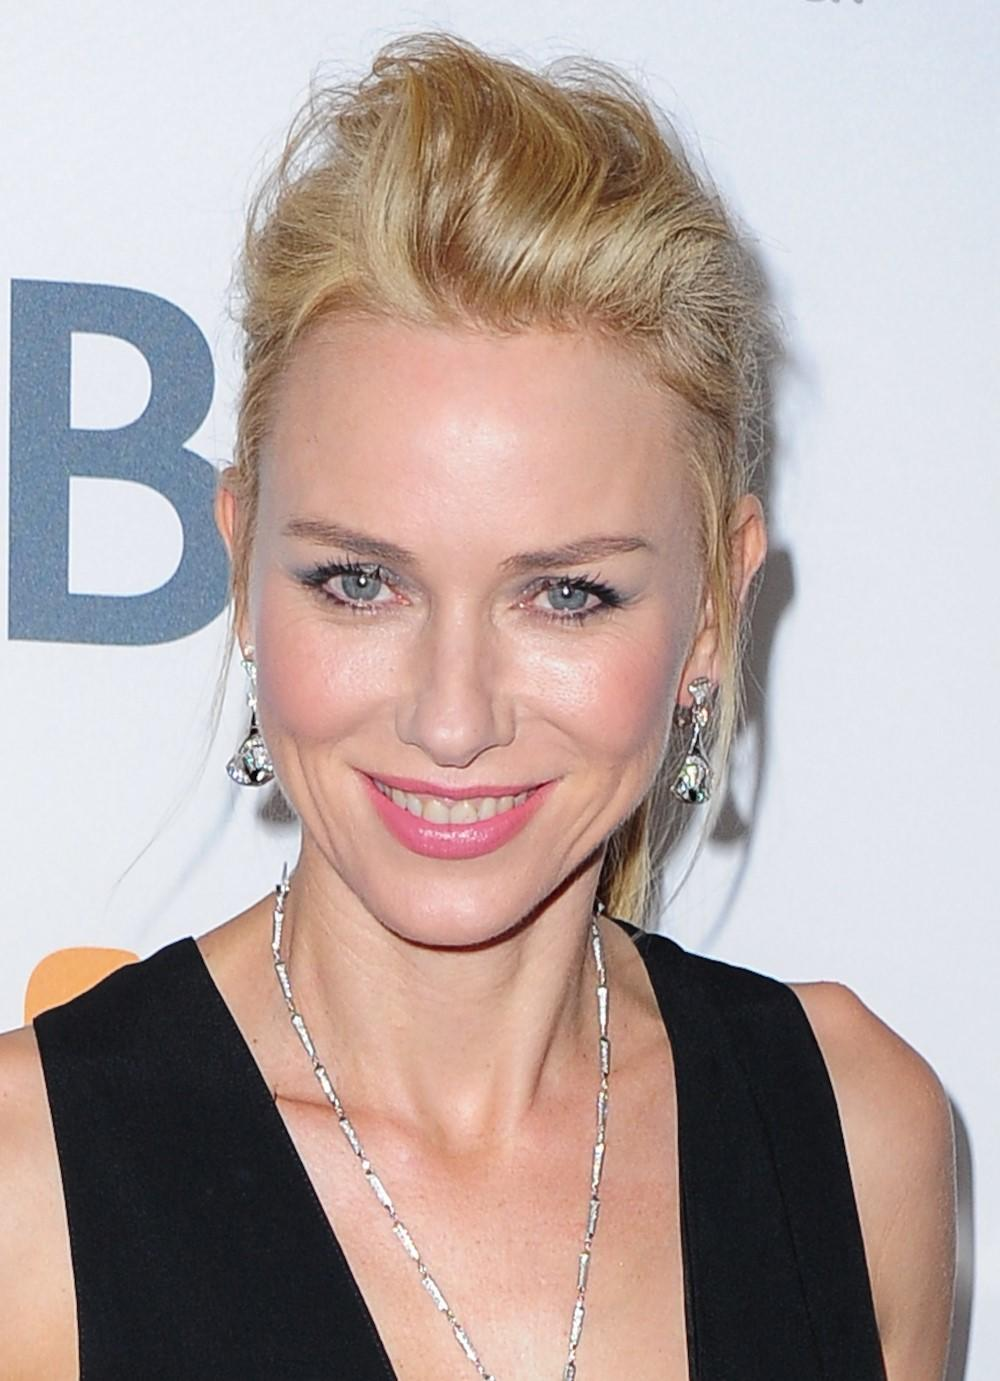 ICloud Naomi Watts nude (78 foto and video), Sexy, Leaked, Boobs, braless 2006